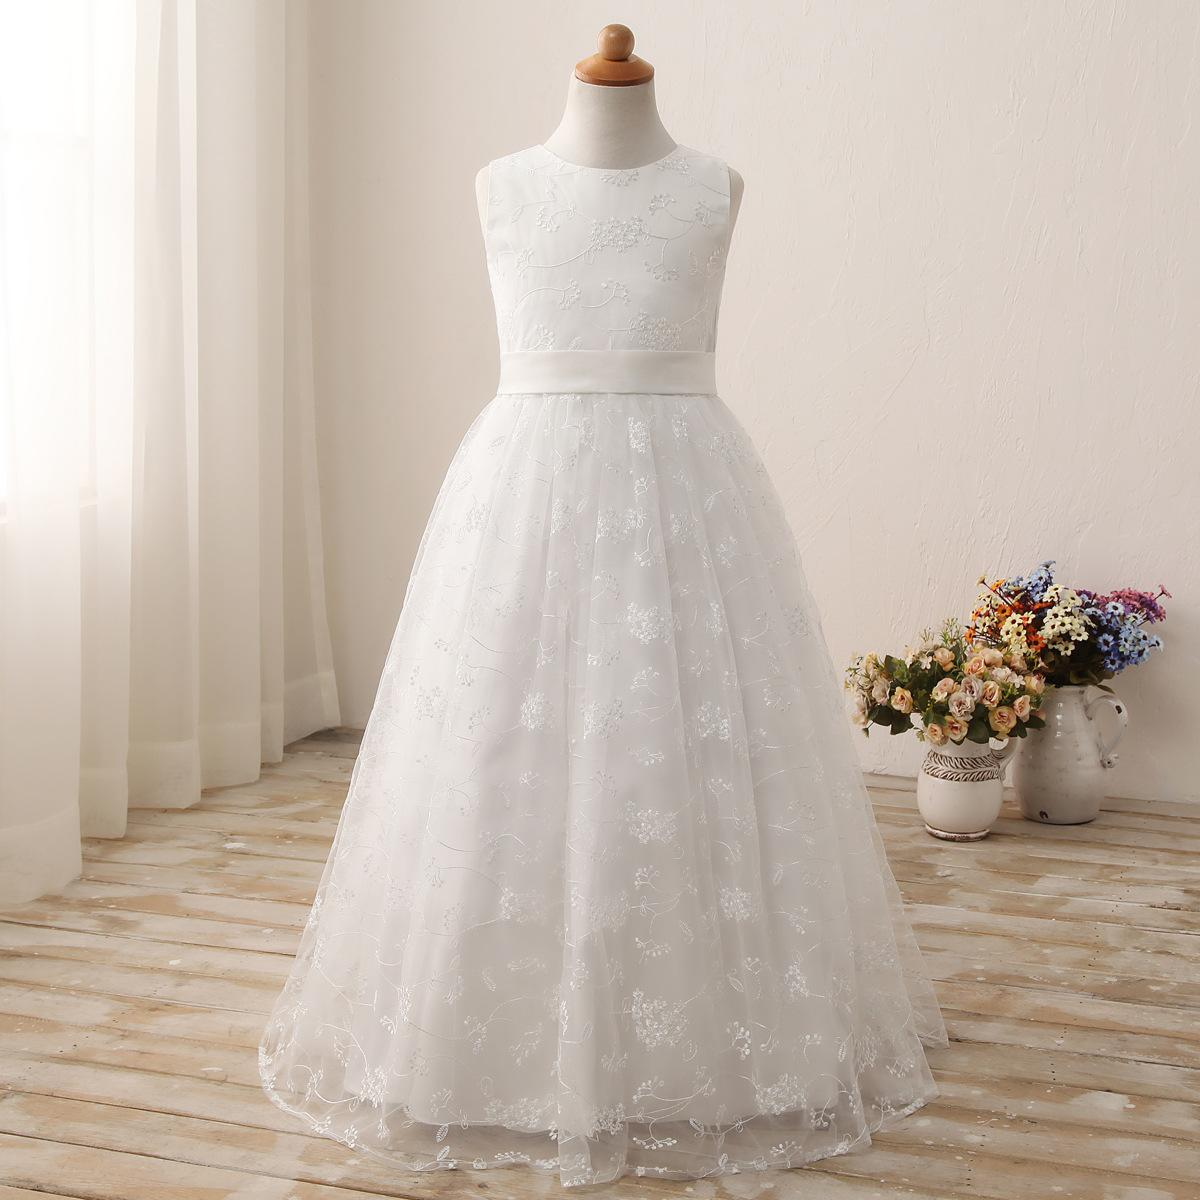 Childrens Dress White Collar Shoulder Wrap Lace Embroidery Long